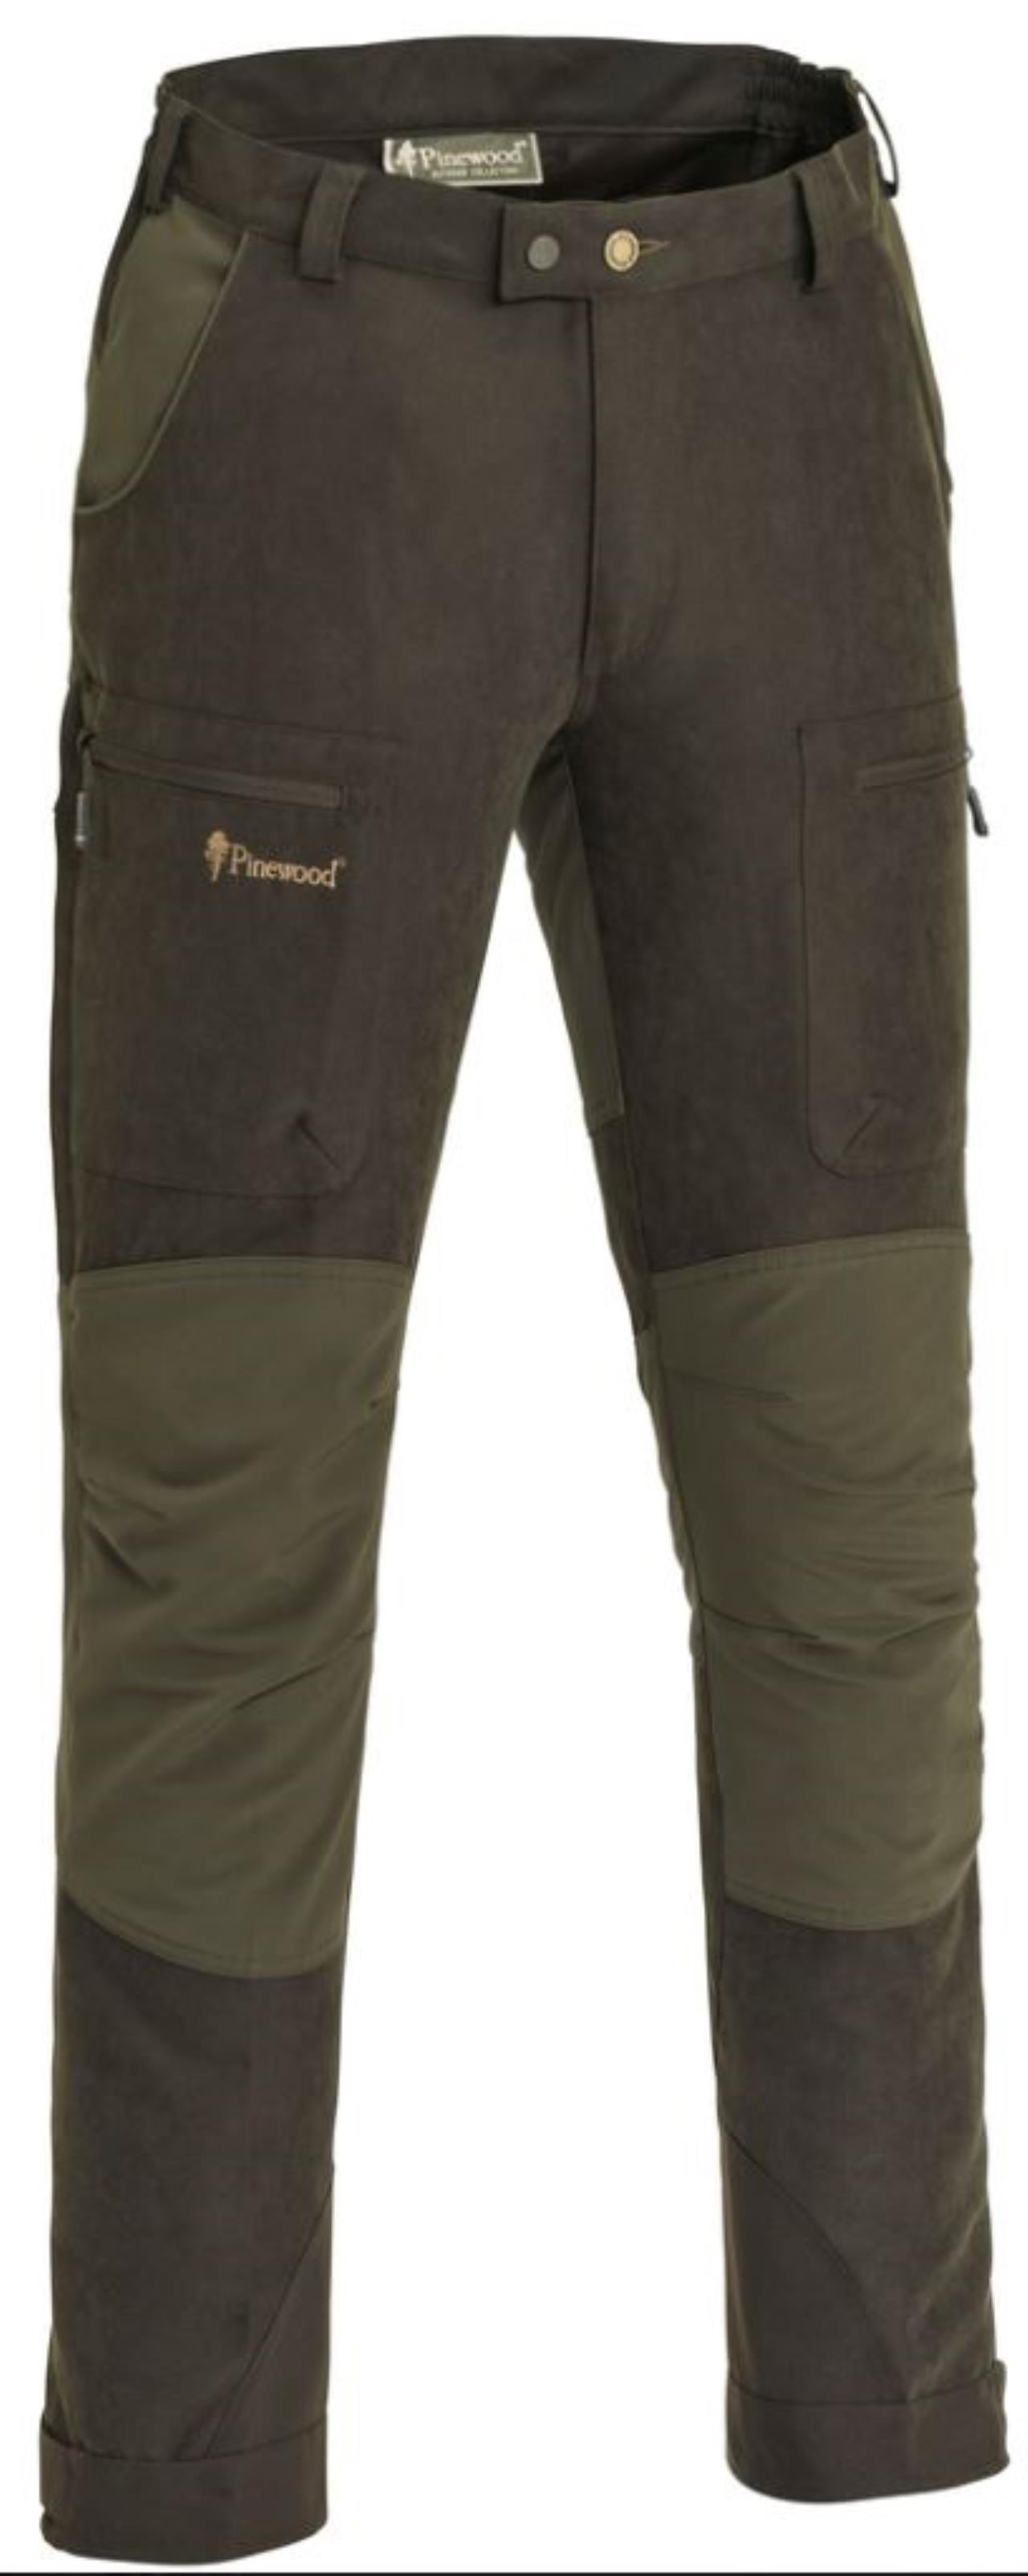 PINEWOOD HUNTER EXTREME TROUSERS